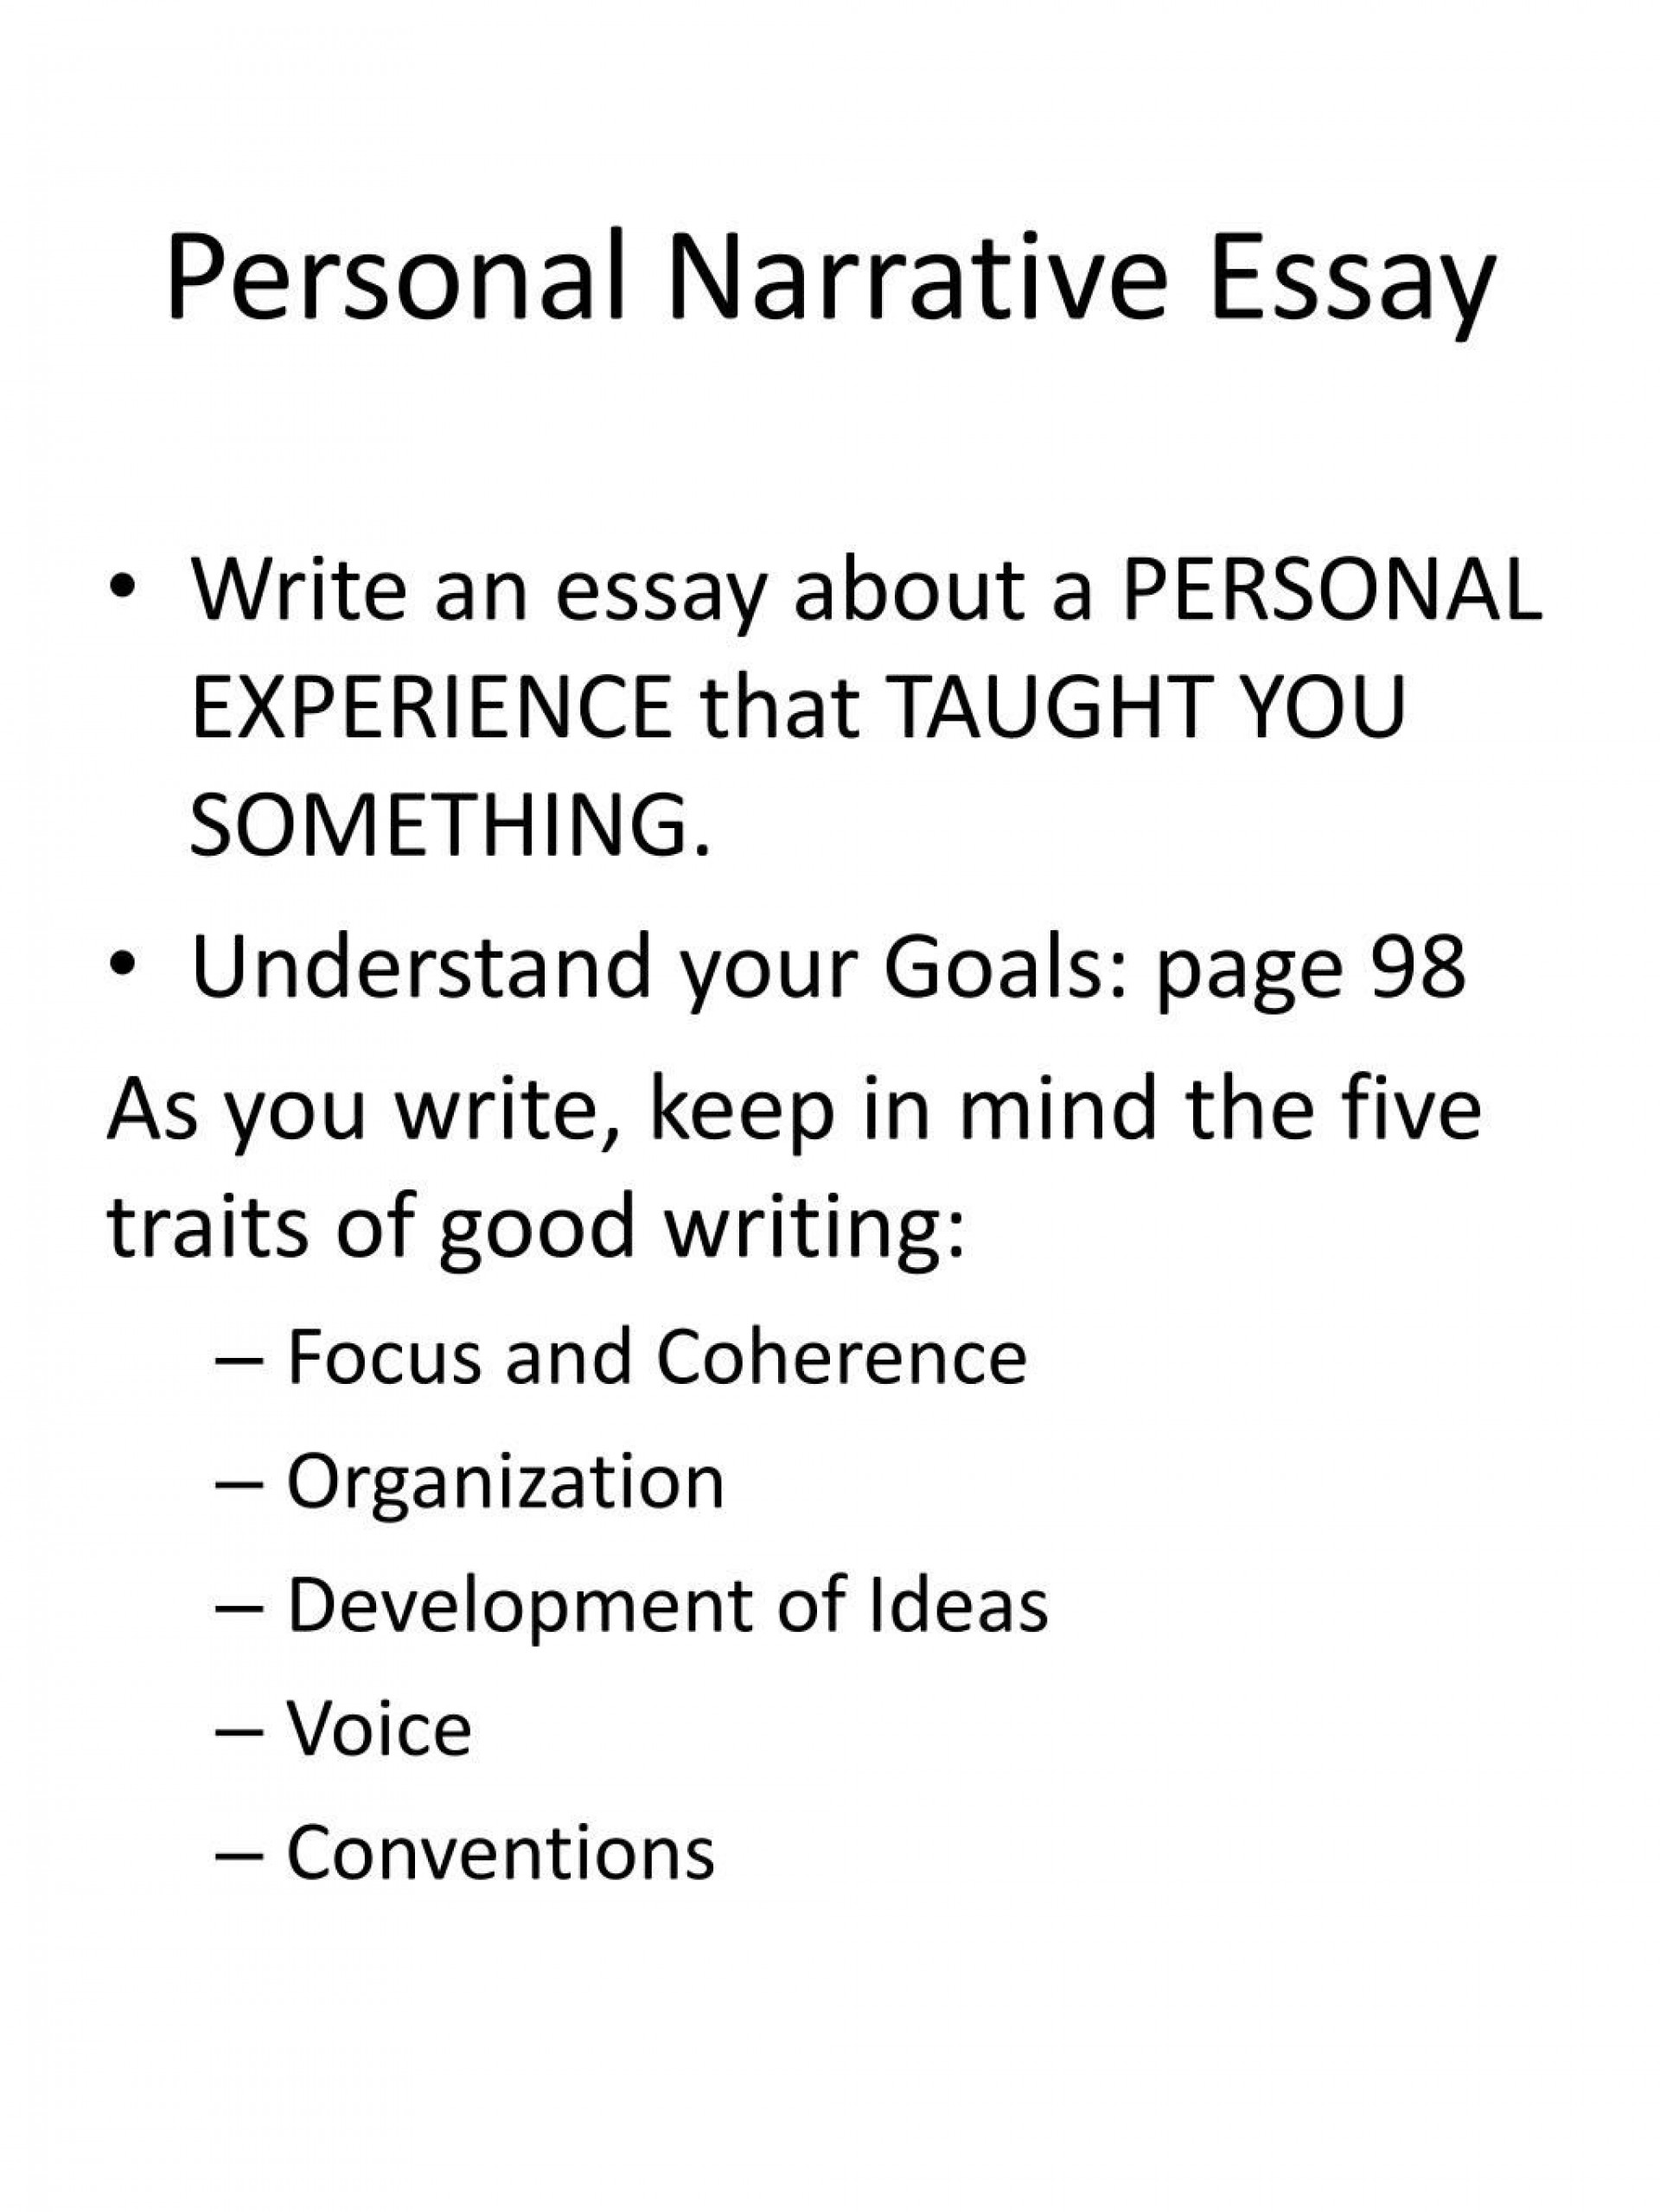 008 Striking Personal Narrative Essay High Resolution  Structure Sample School Prompt1920